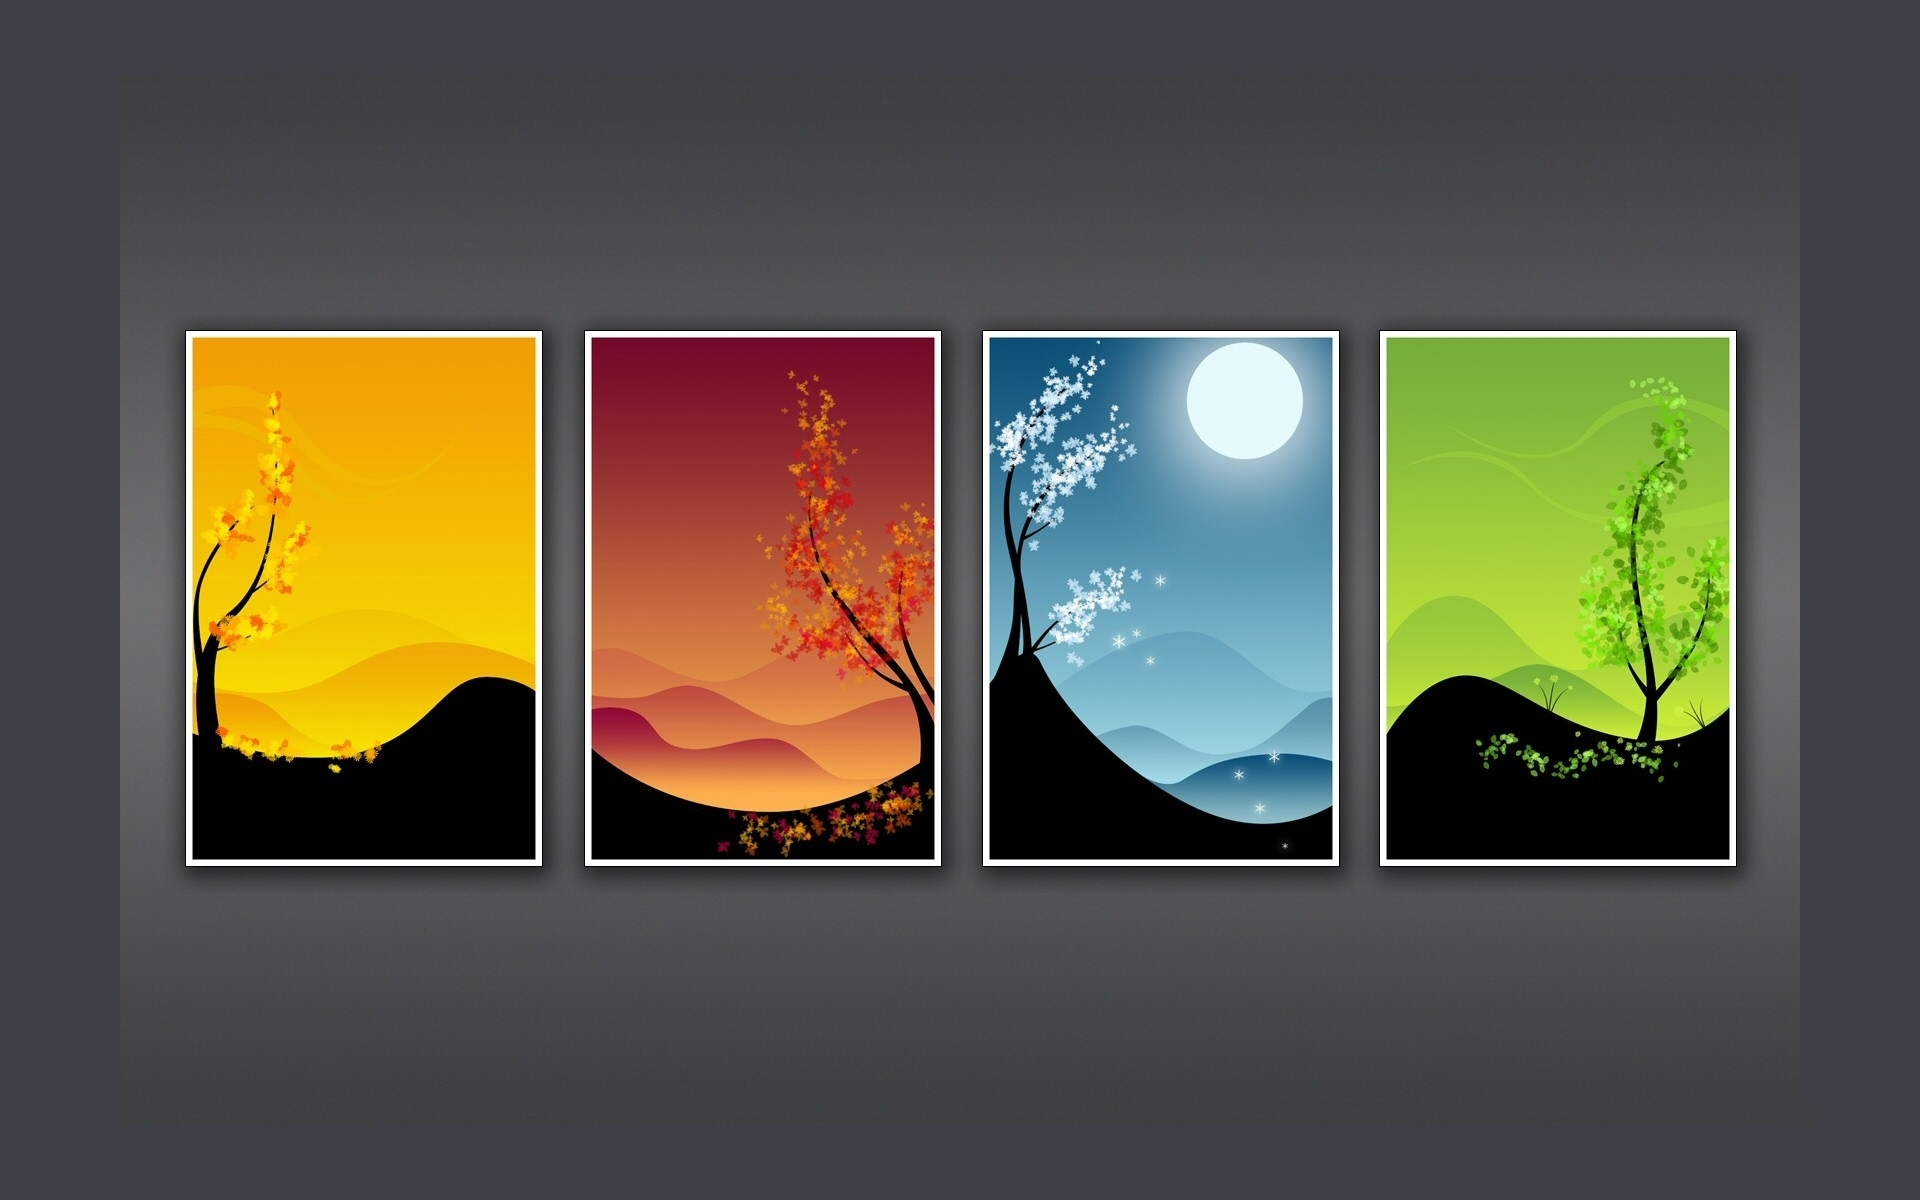 Four seasons pictures wallpapers four seasons pictures - Seasons wallpaper backgrounds ...